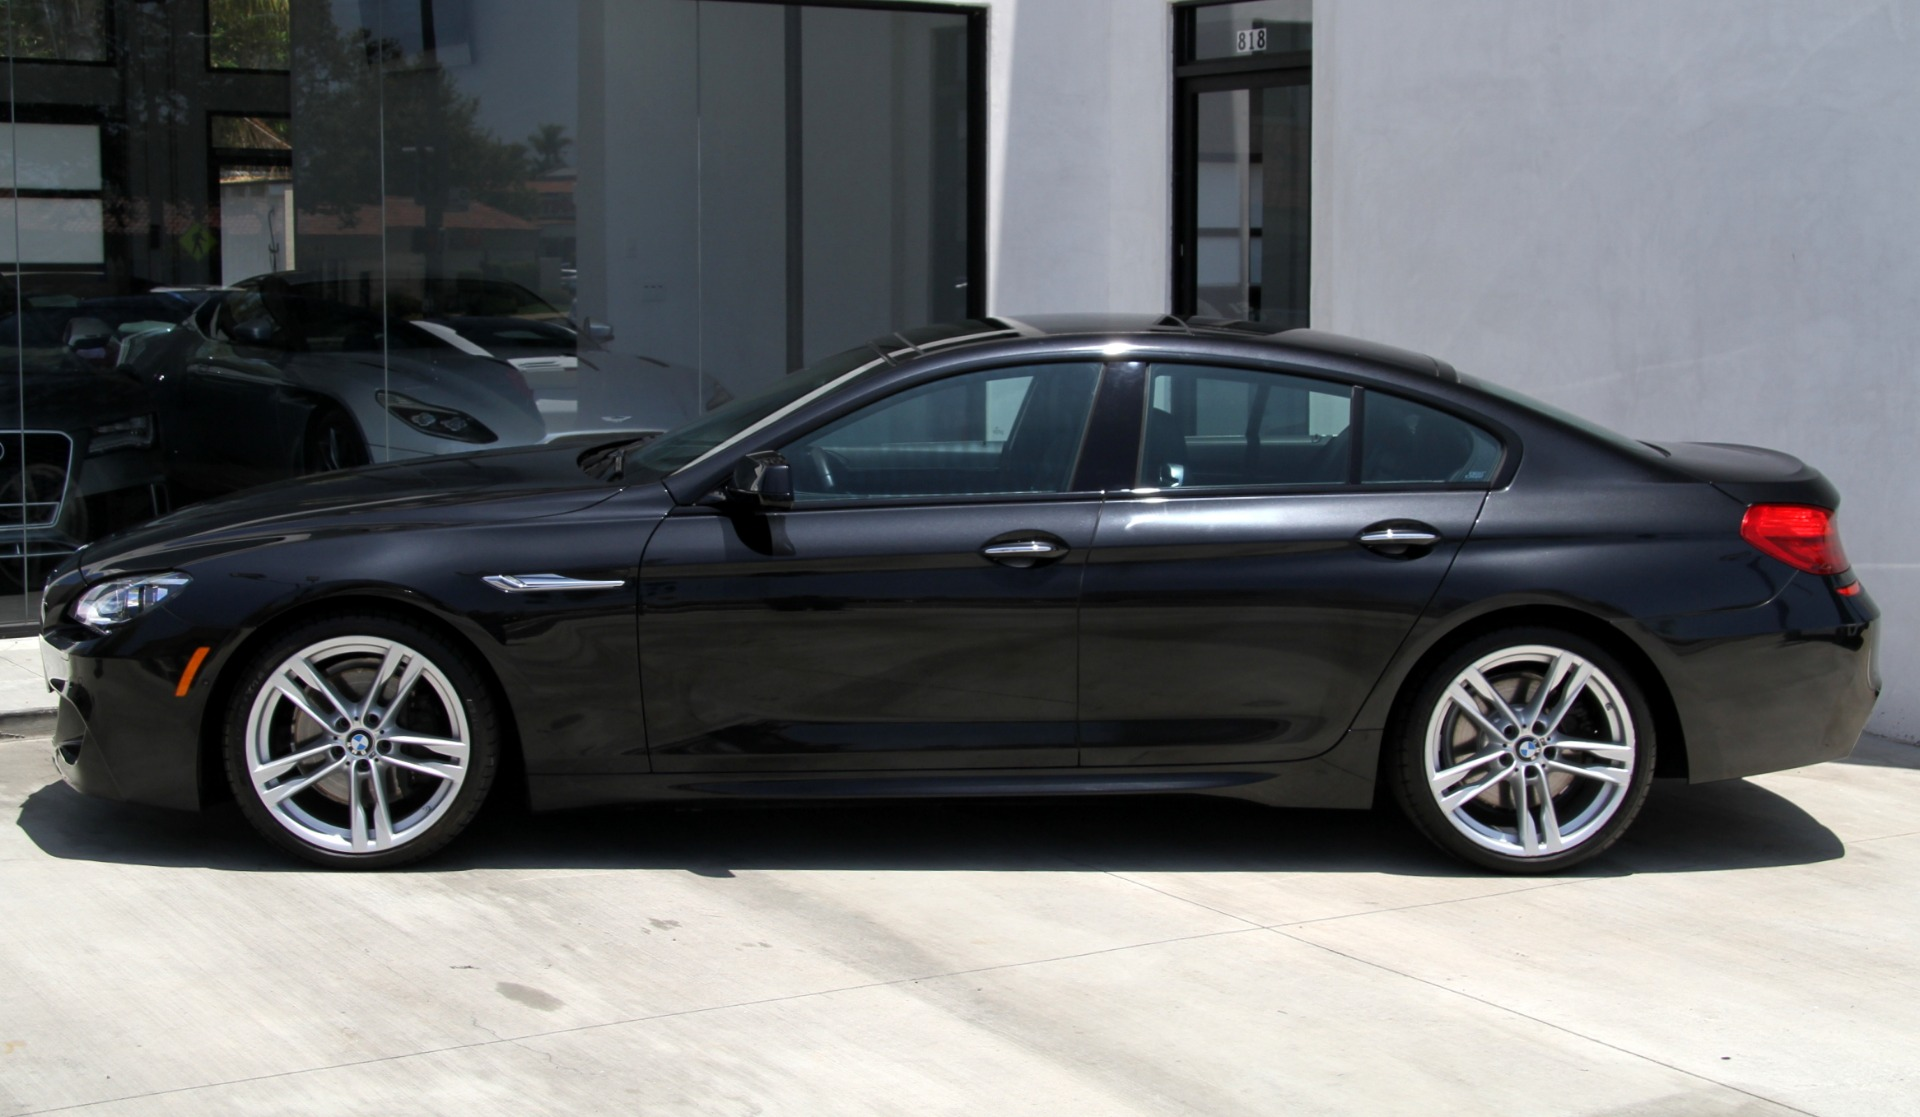 2015 bmw 6 series 650i gran coupe m sport stock 6225 for sale near redondo beach ca. Black Bedroom Furniture Sets. Home Design Ideas